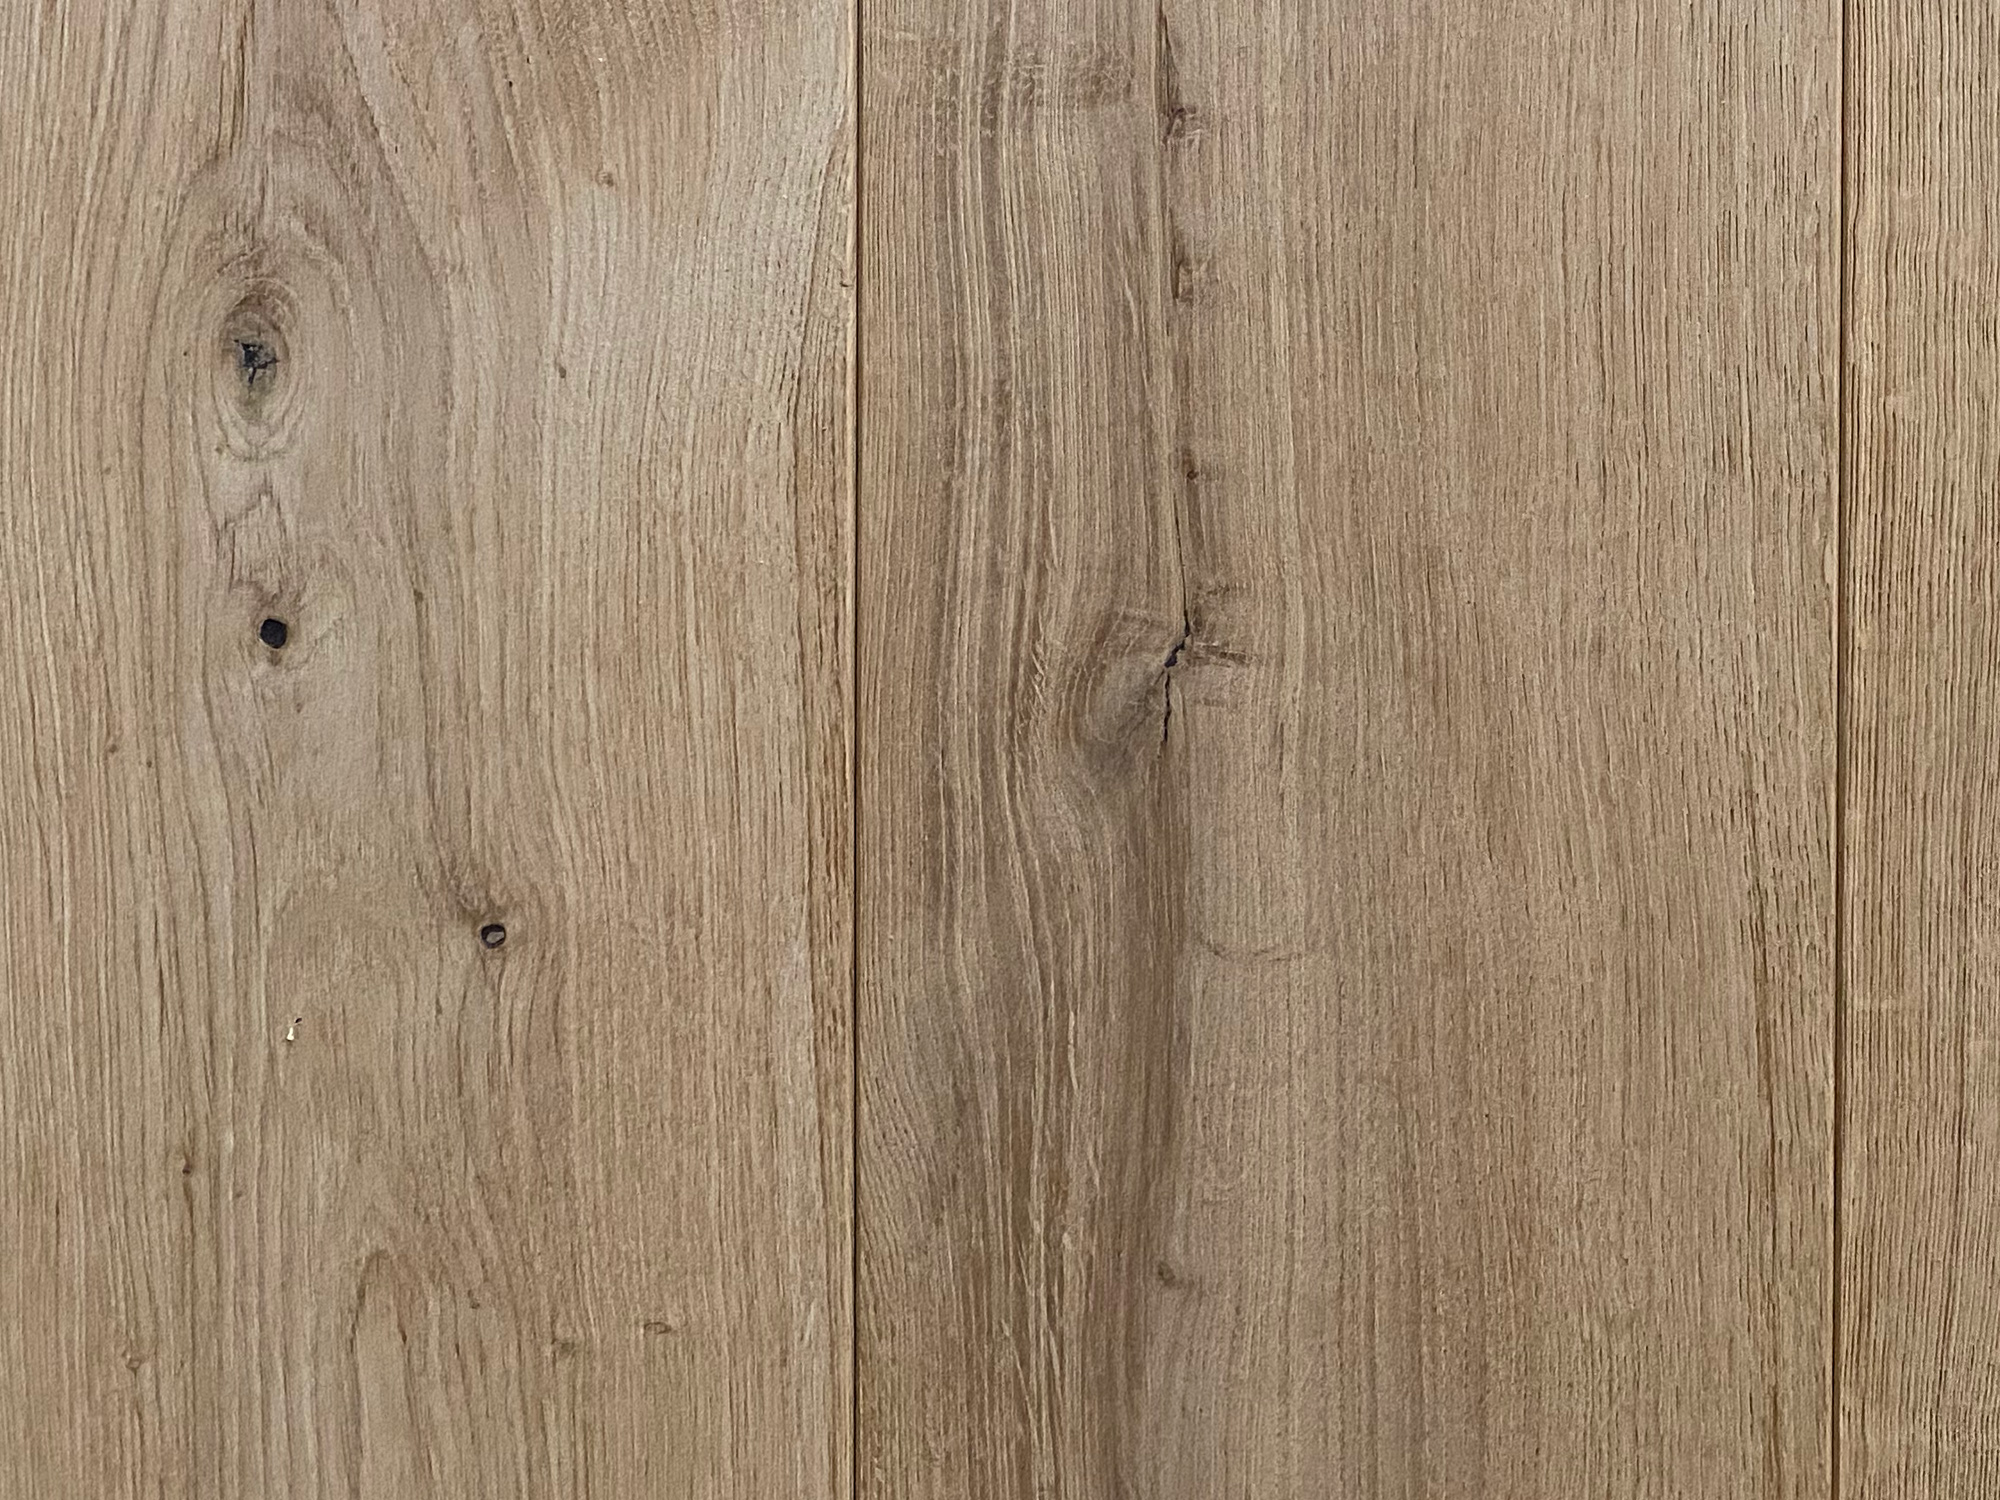 close up of knot on oak flooring